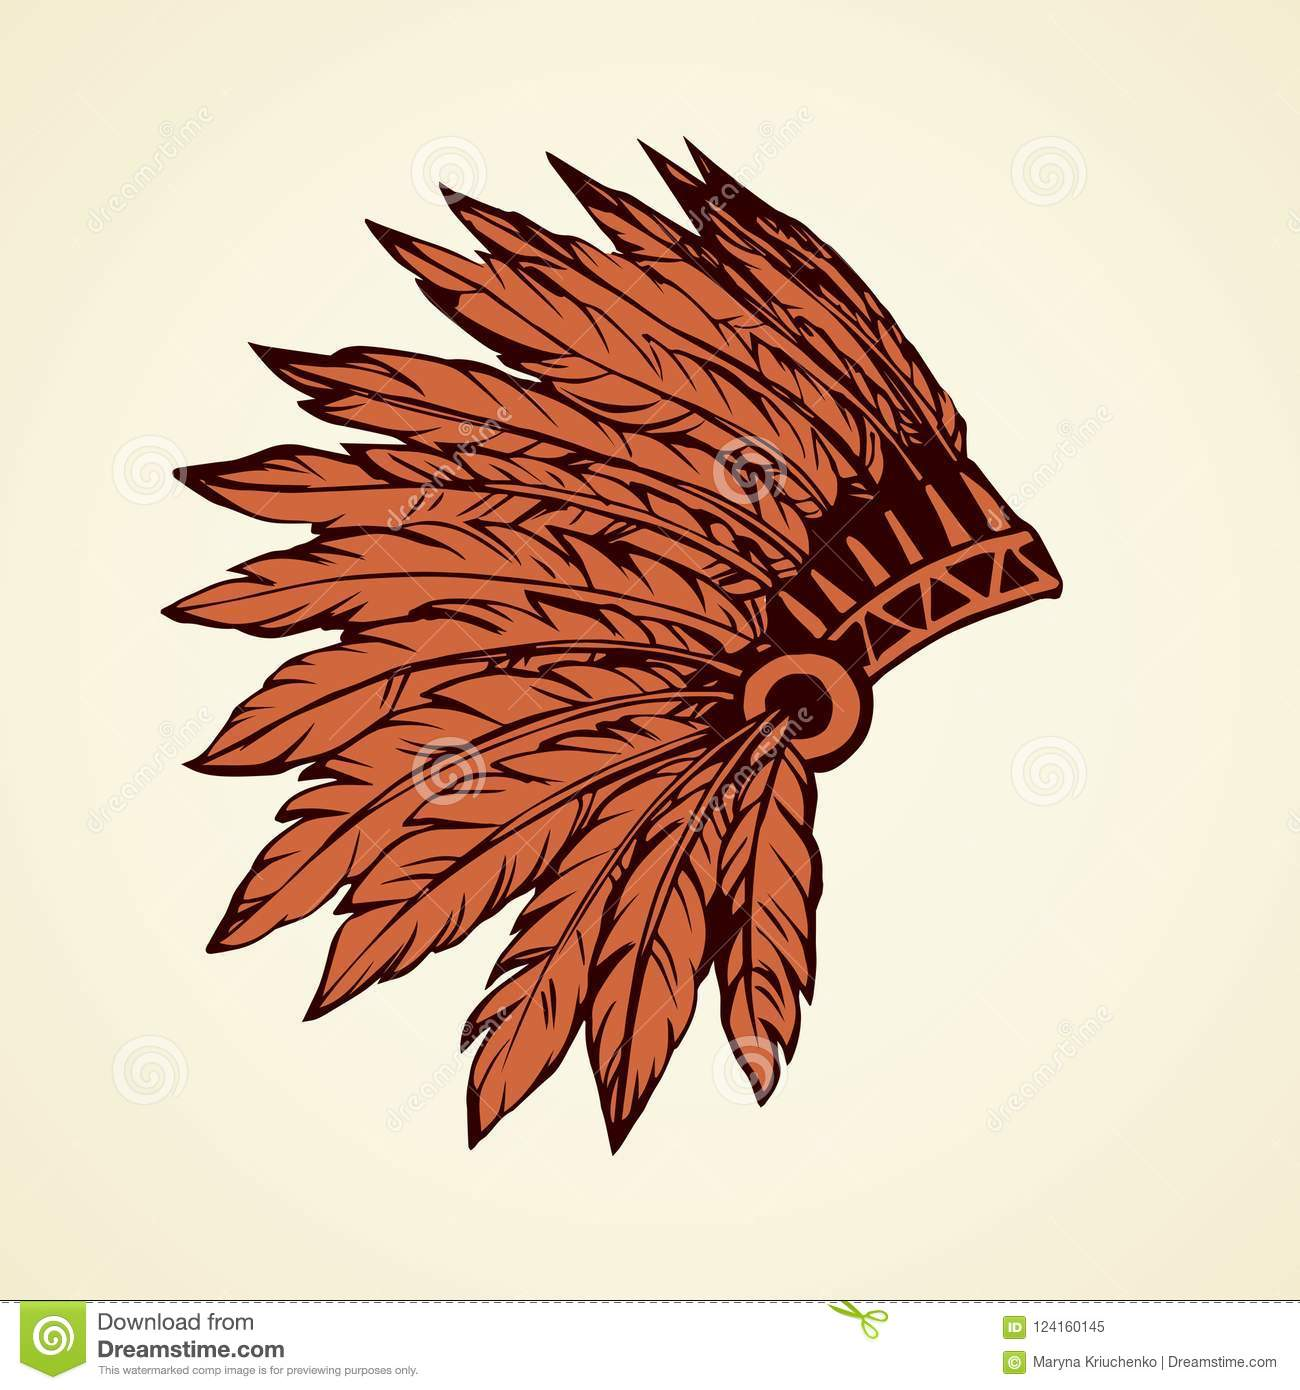 Outline Drawings Of Native American Feathers Wiring Diagrams Com Printed Circuit Board Assembly Pcba Smt Tht Service 11255463 Htm With Vector Drawing Stock Rh Dreamstime Feather Pencil Awesome